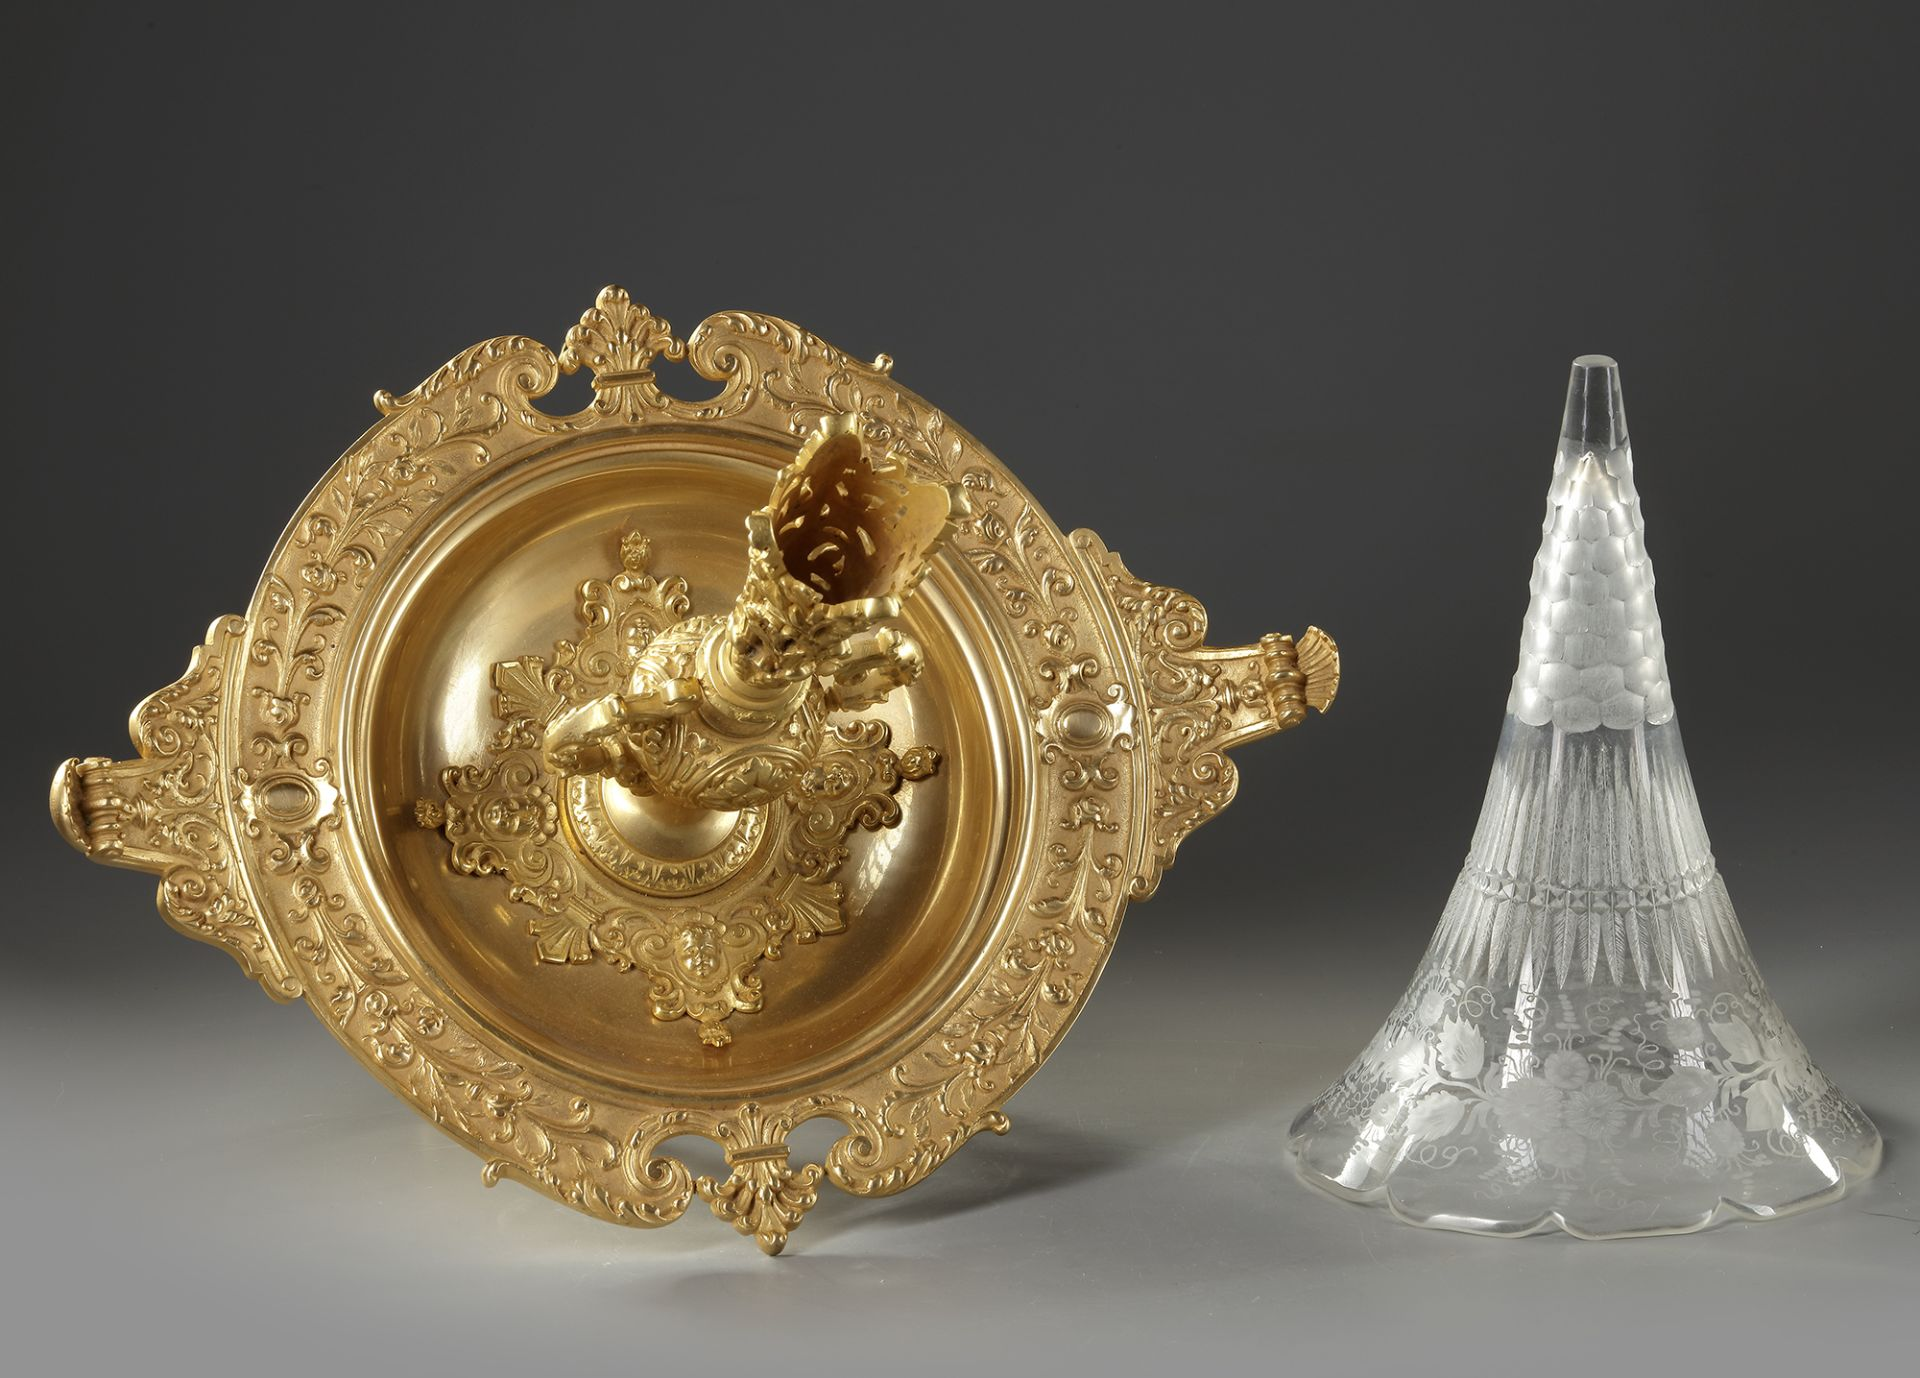 A SOLIFLORE CENTERPIECE, LATE 19TH CENTURY - Image 3 of 3